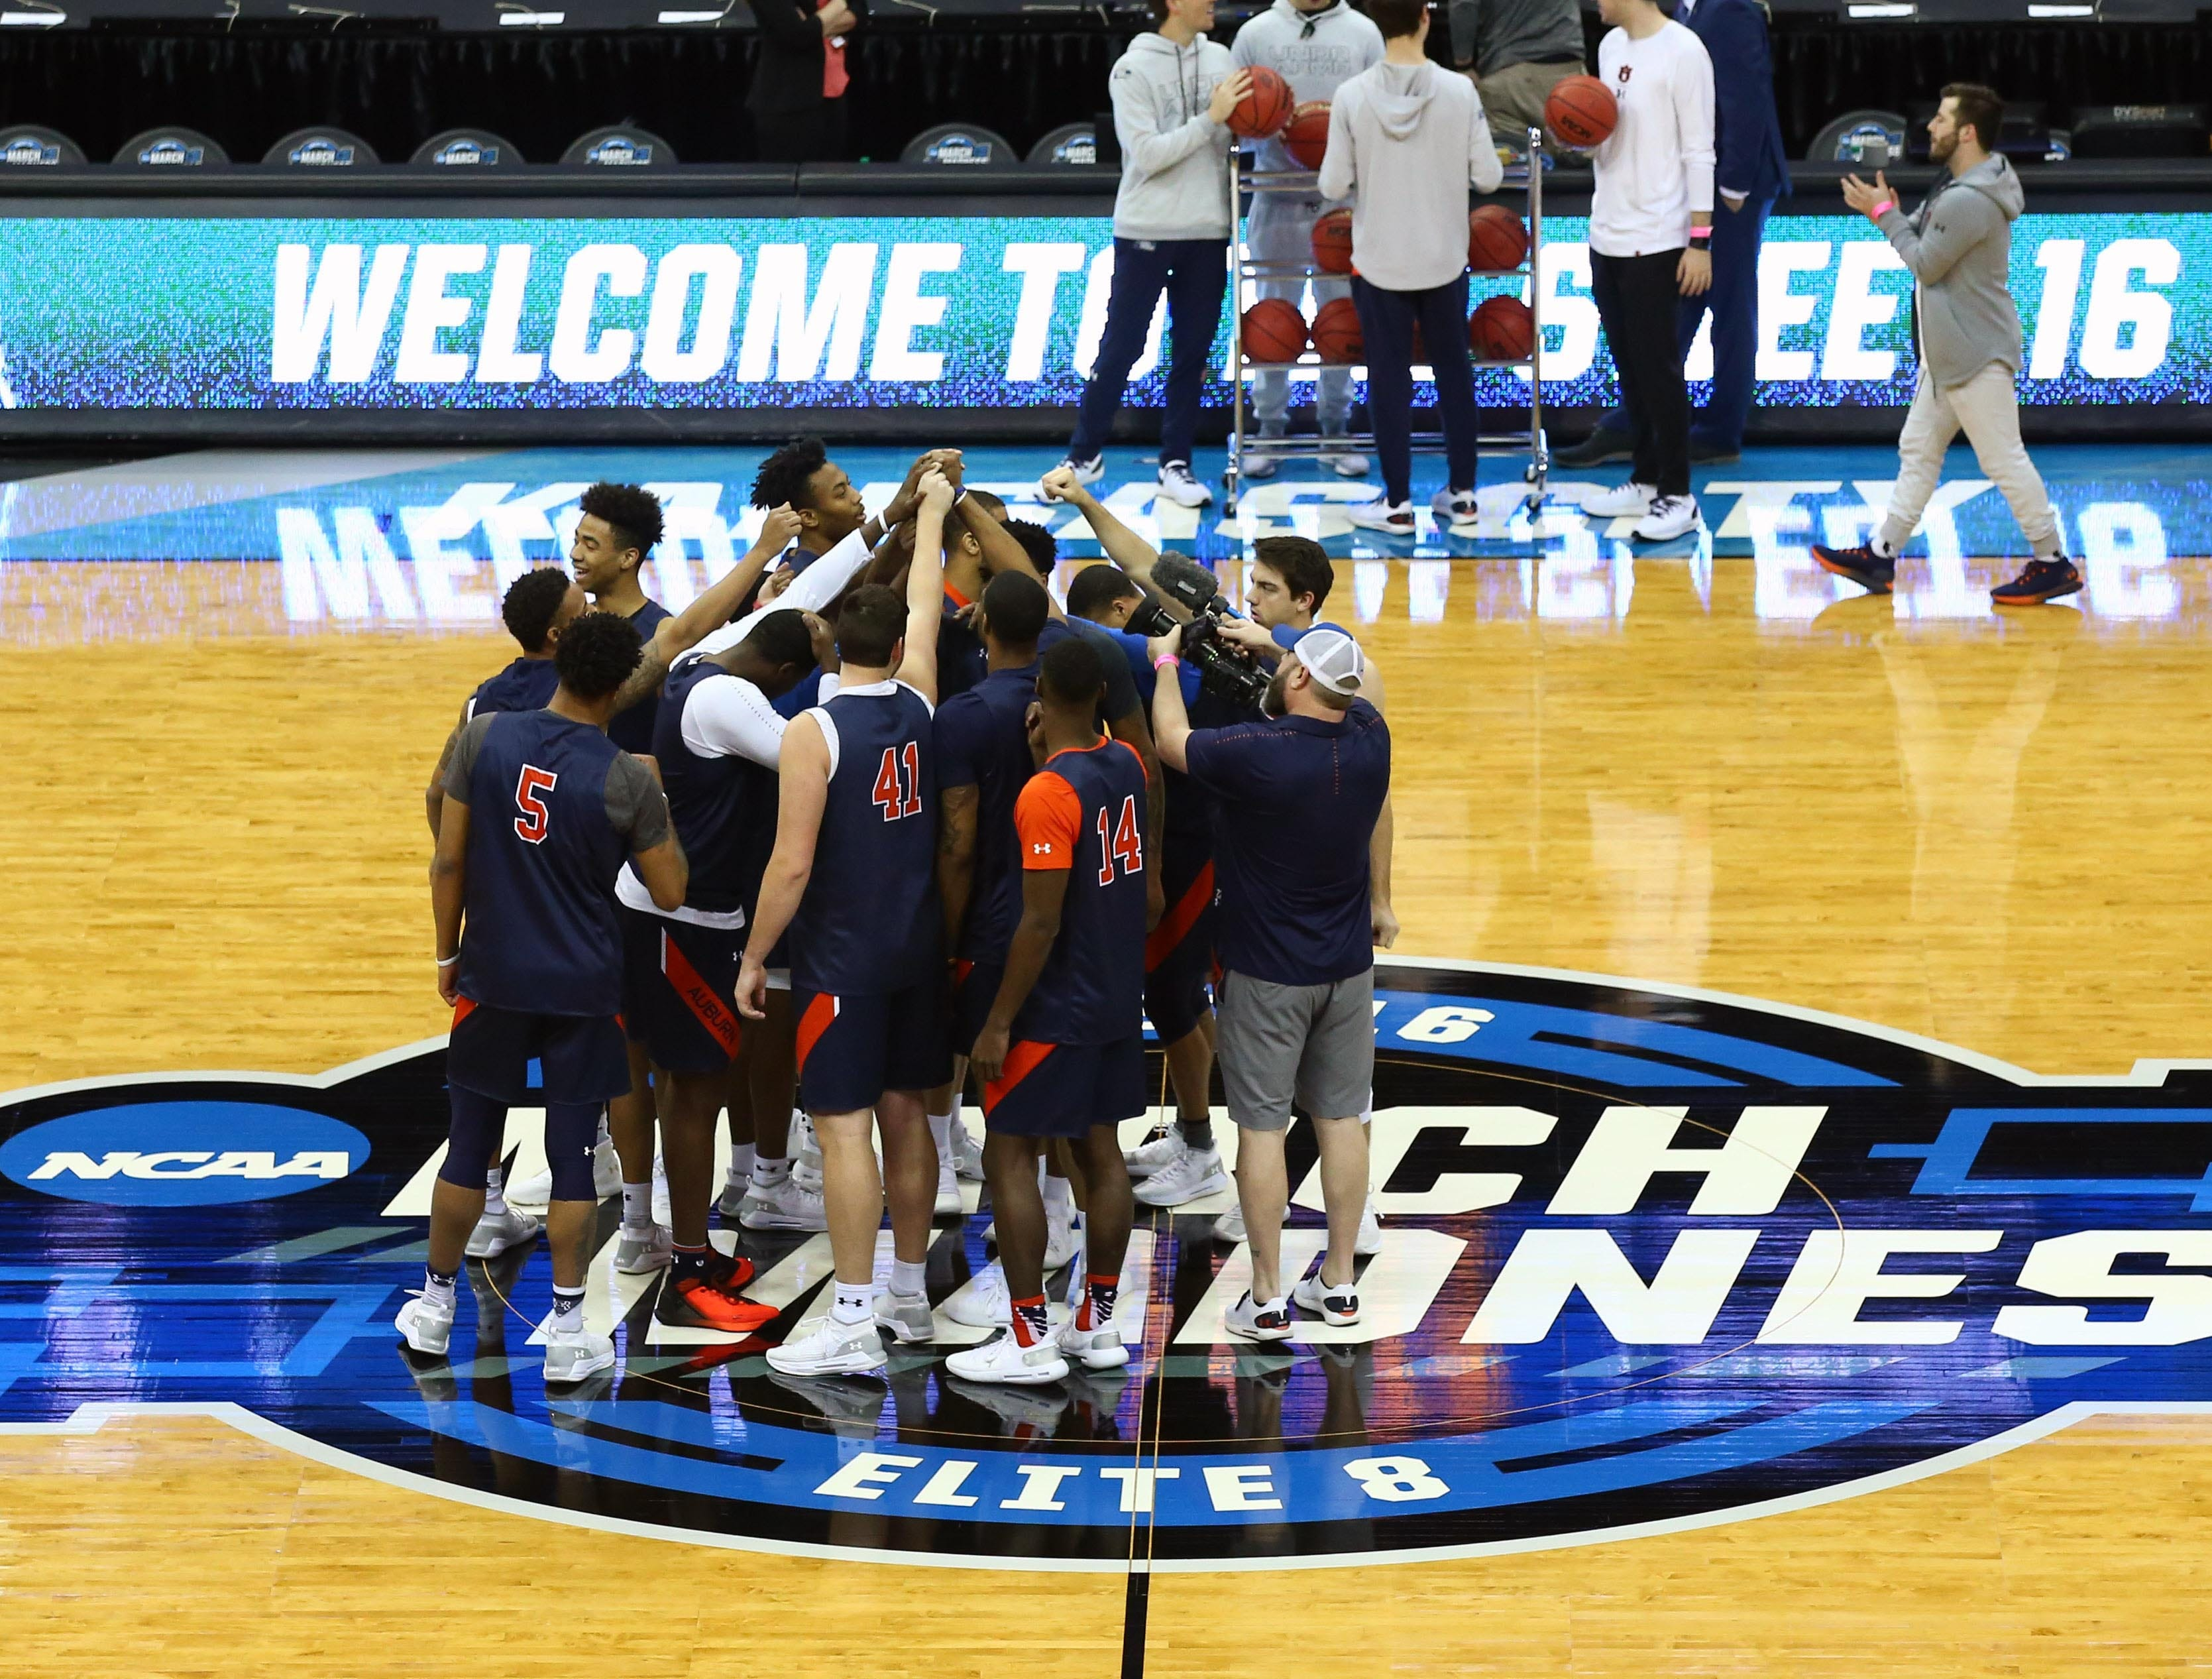 Mar 28, 2019; Kansas City, MO, United States;  The Auburn Tigers during practice for the midwest regional of the 2019 NCAA Tournament at Sprint Center. Mandatory Credit: Jay Biggerstaff-USA TODAY Sports